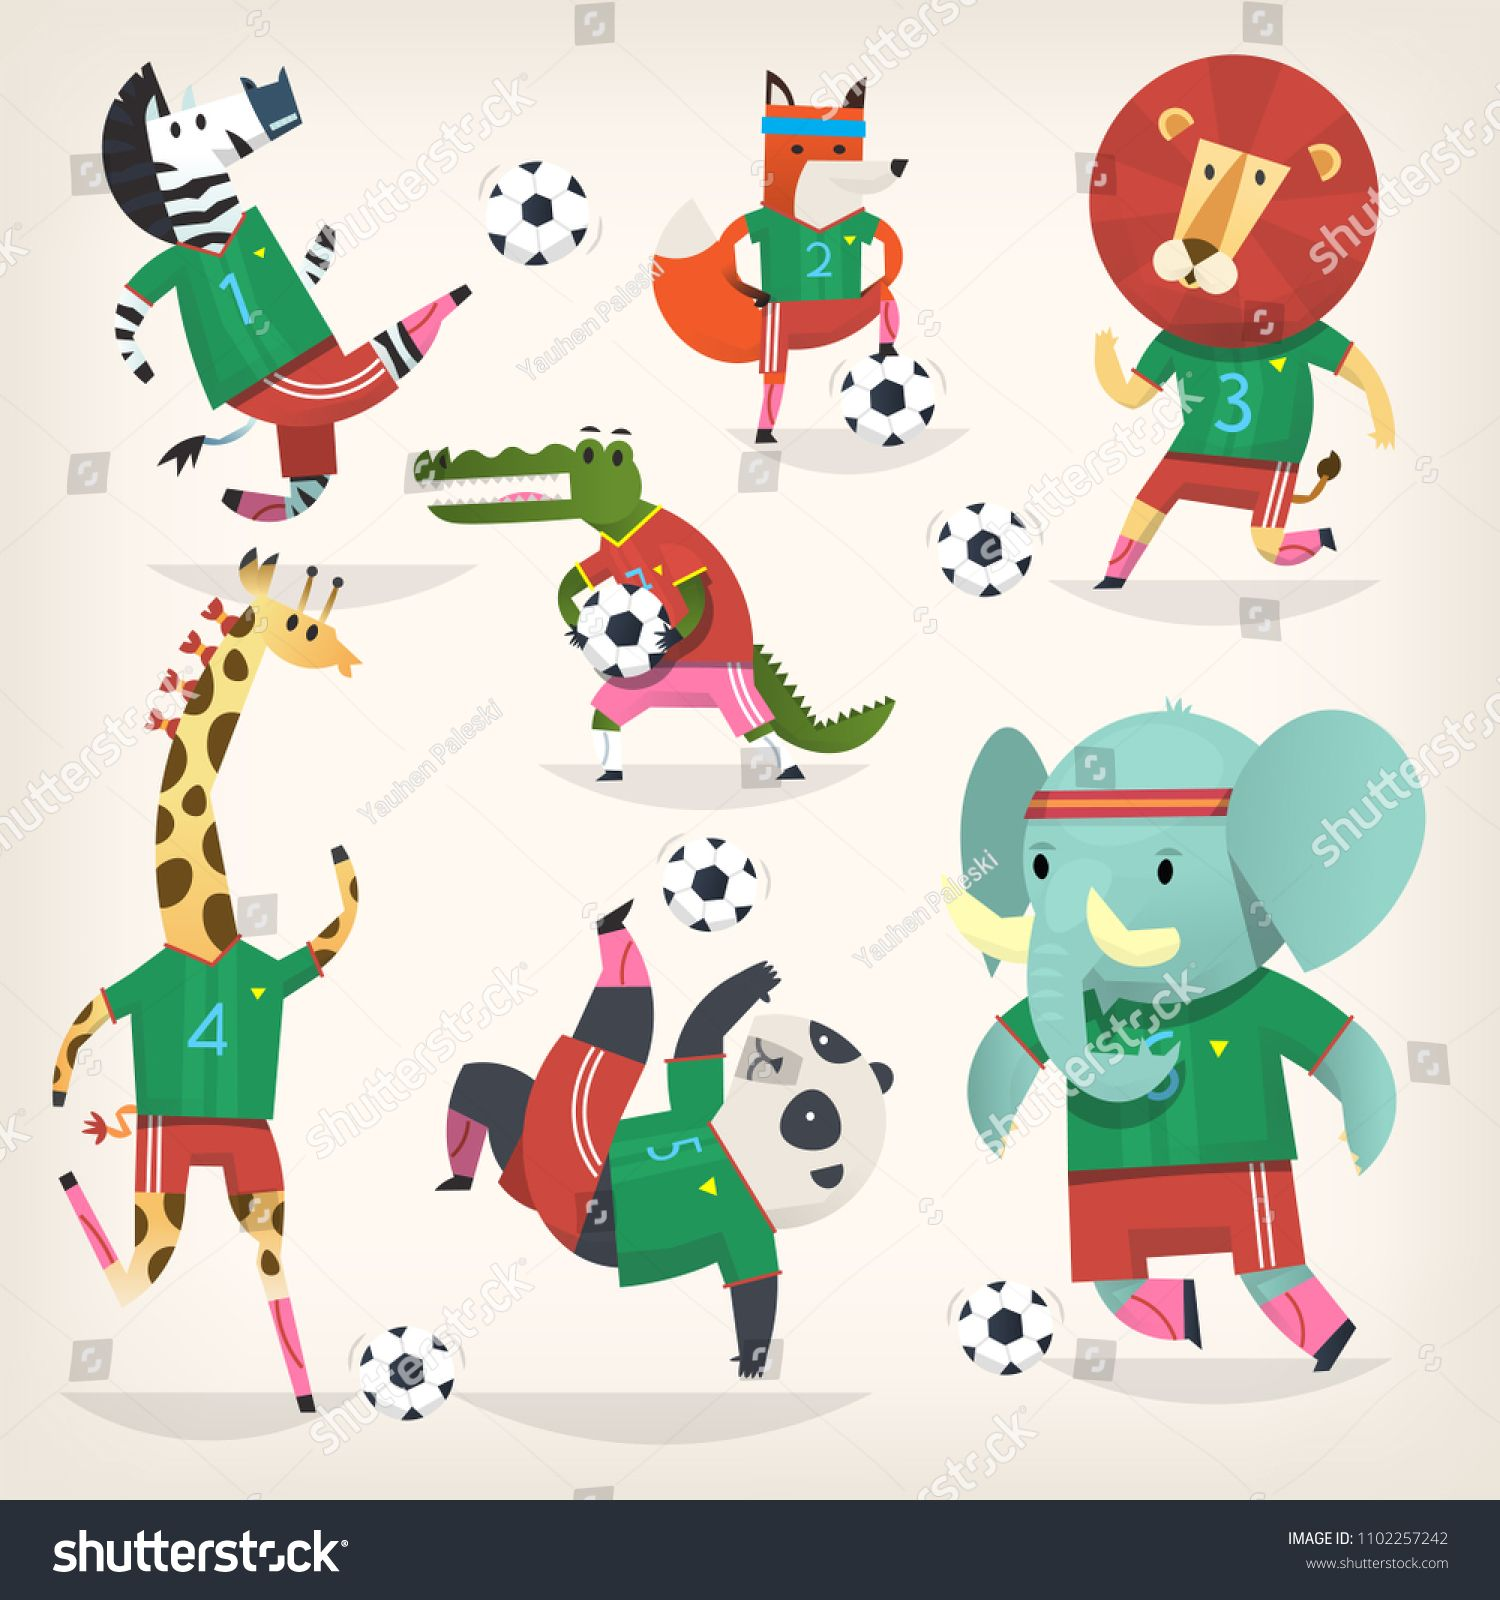 Team Of Wild Animals Playing Football Second Team Cute Animal Characters In Different Positions Cute Animal Illustration Football Illustration Animals Wild